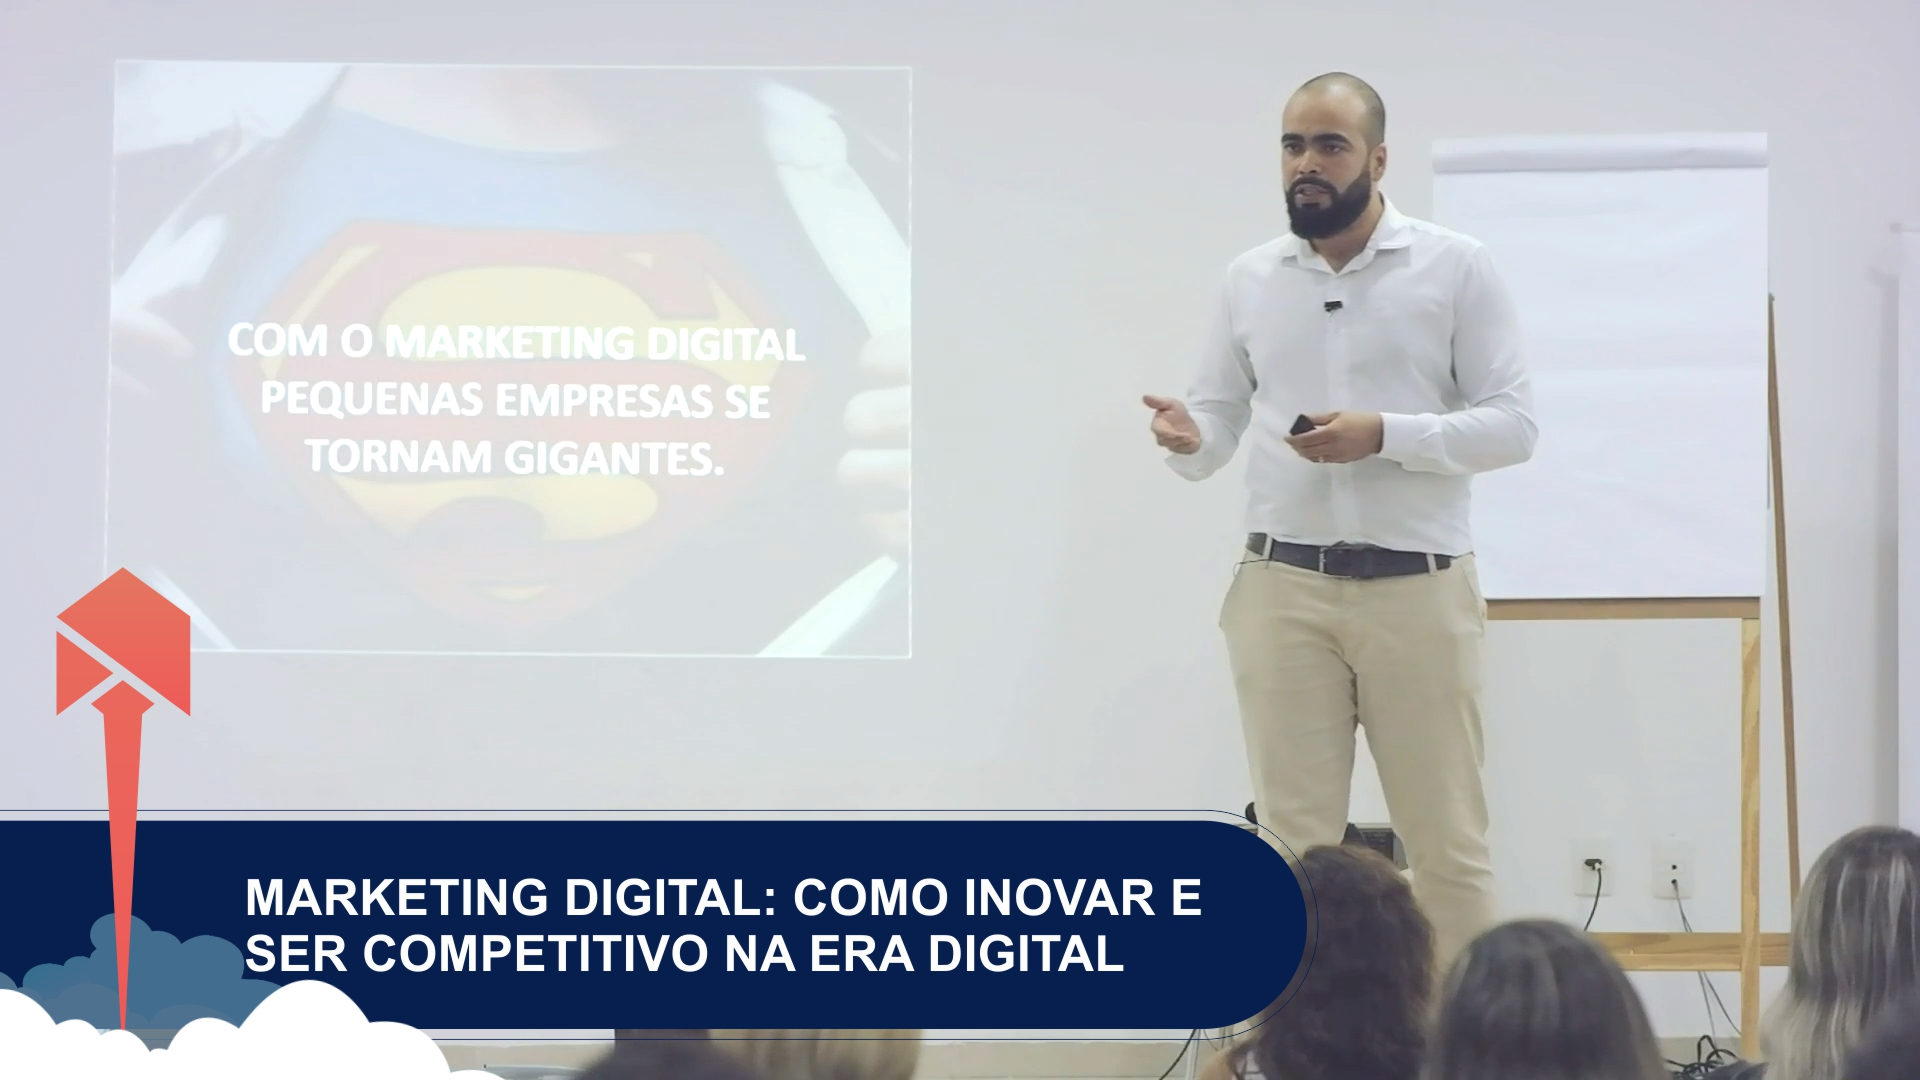 Marketing Digital: Como inovar e ser competitivo na era digital